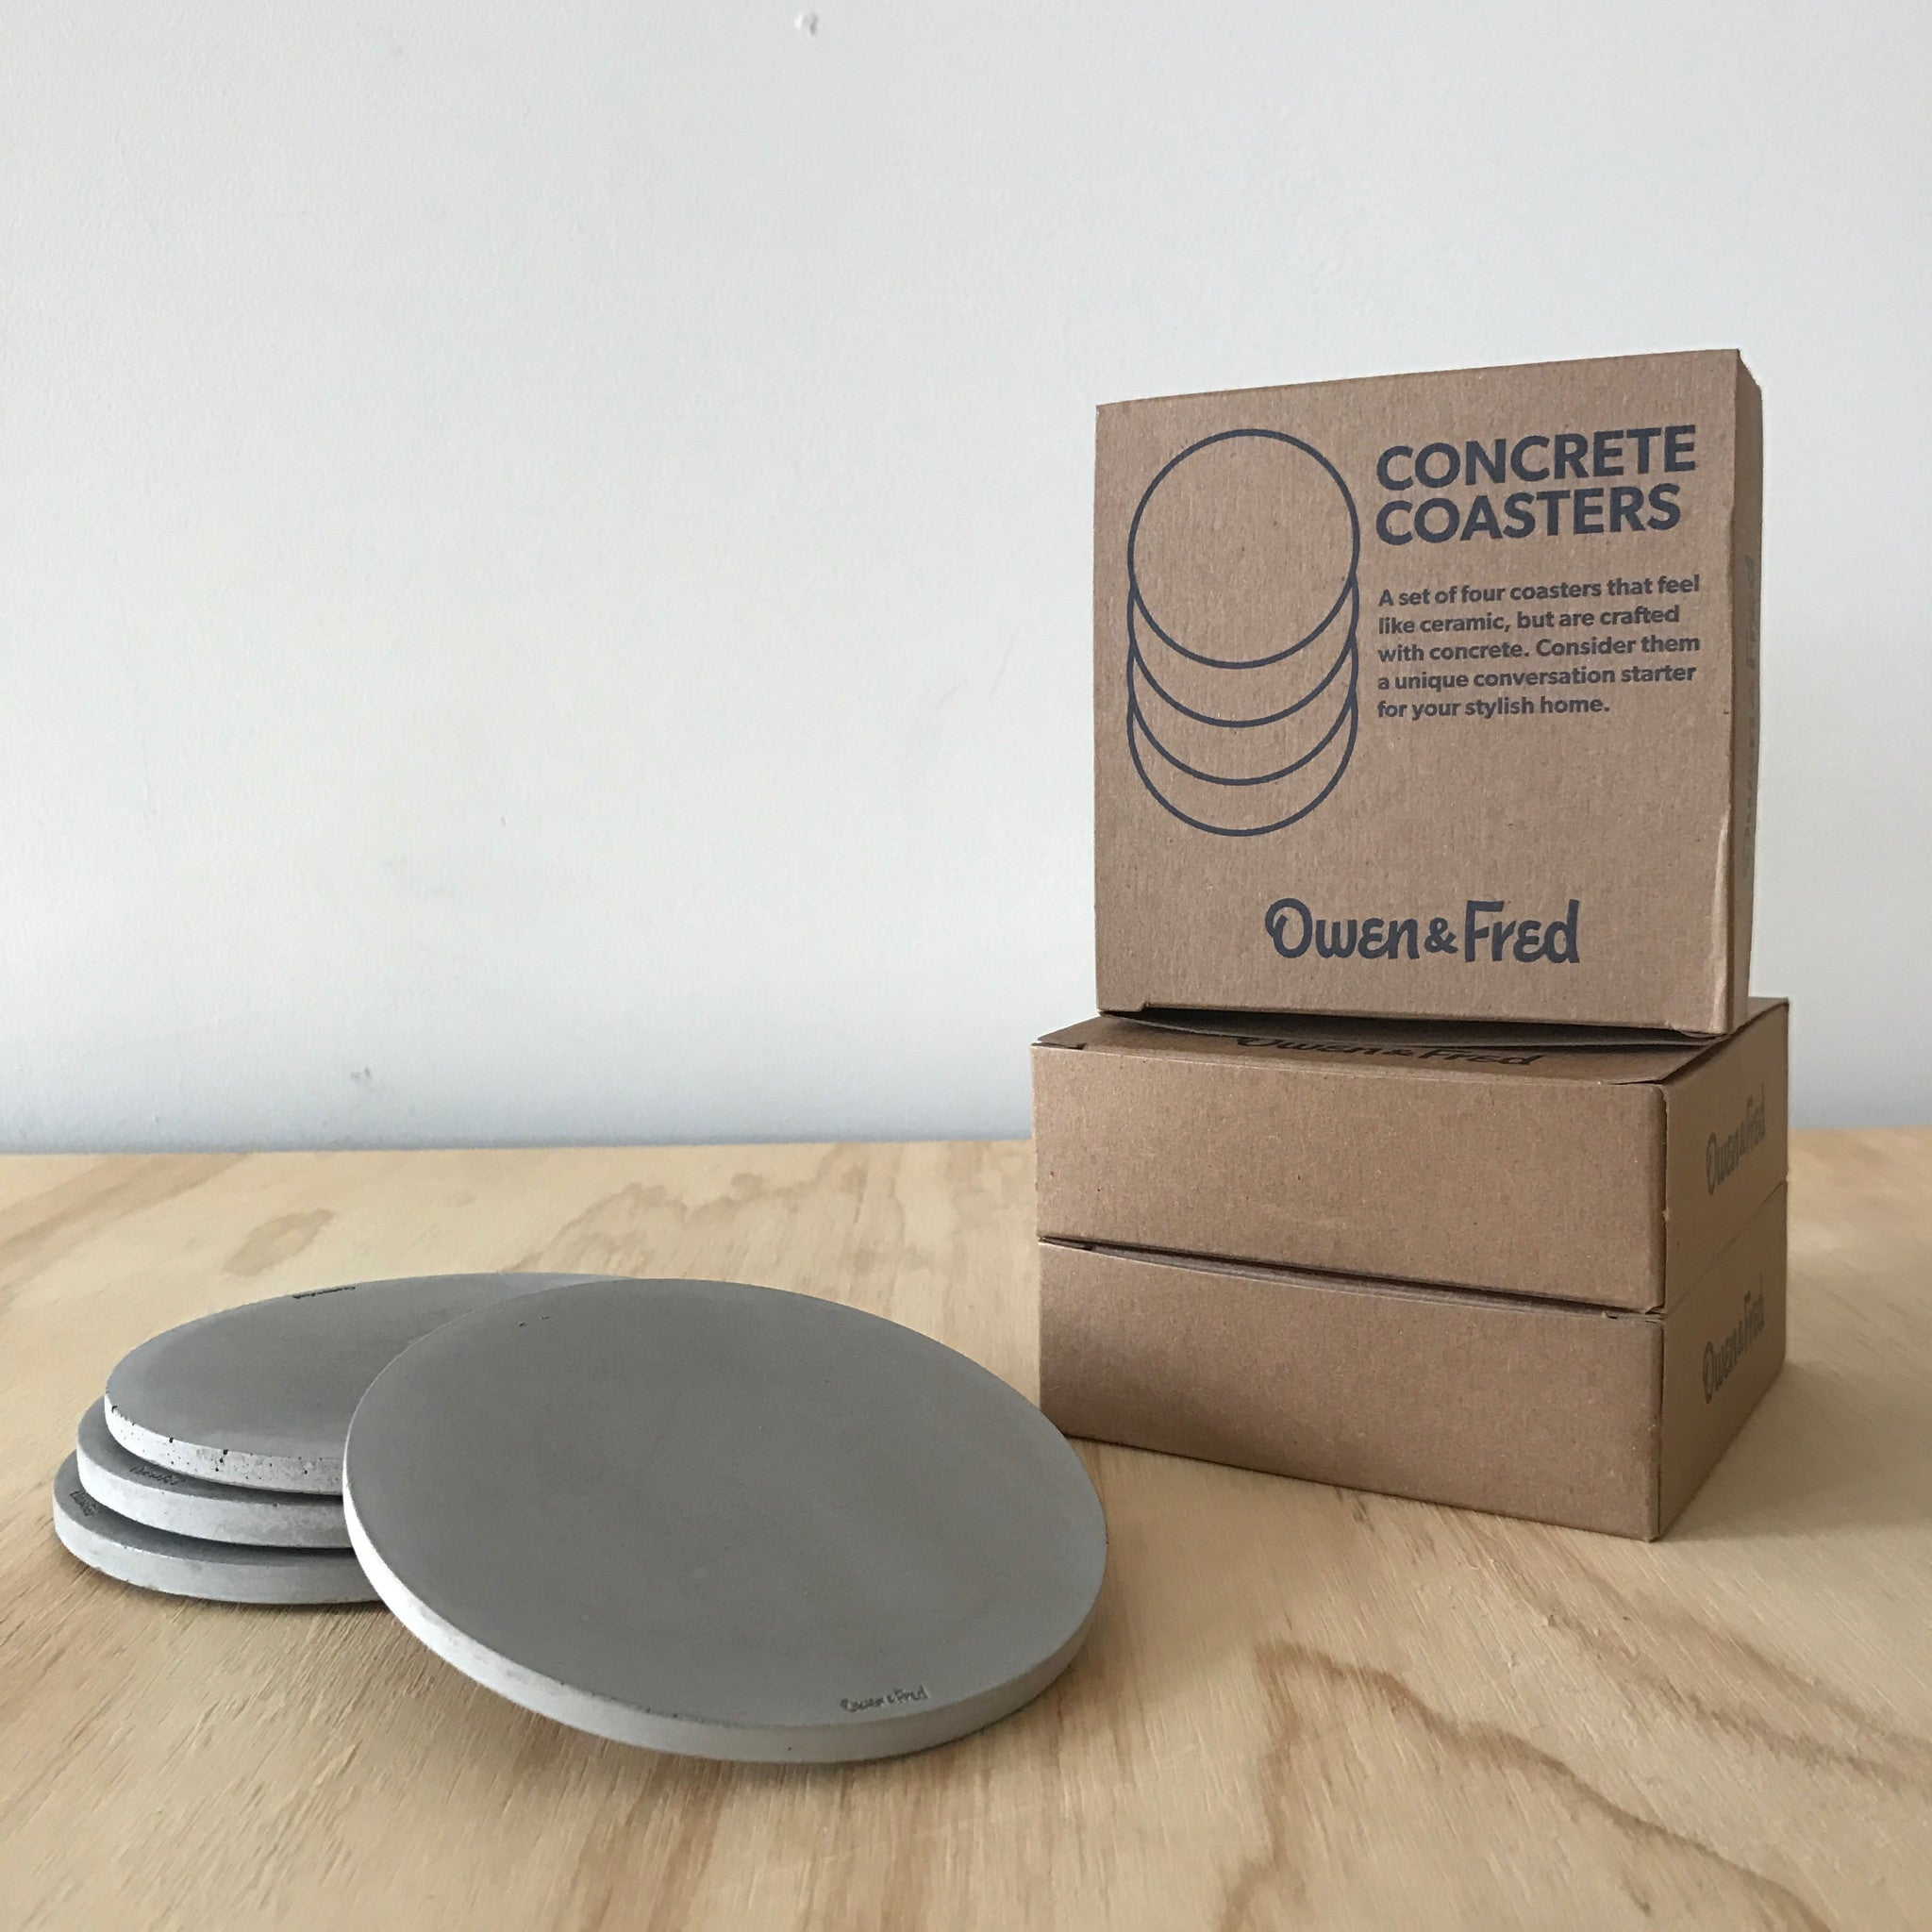 Set of Four Concrete Coasters by Owen & Fred